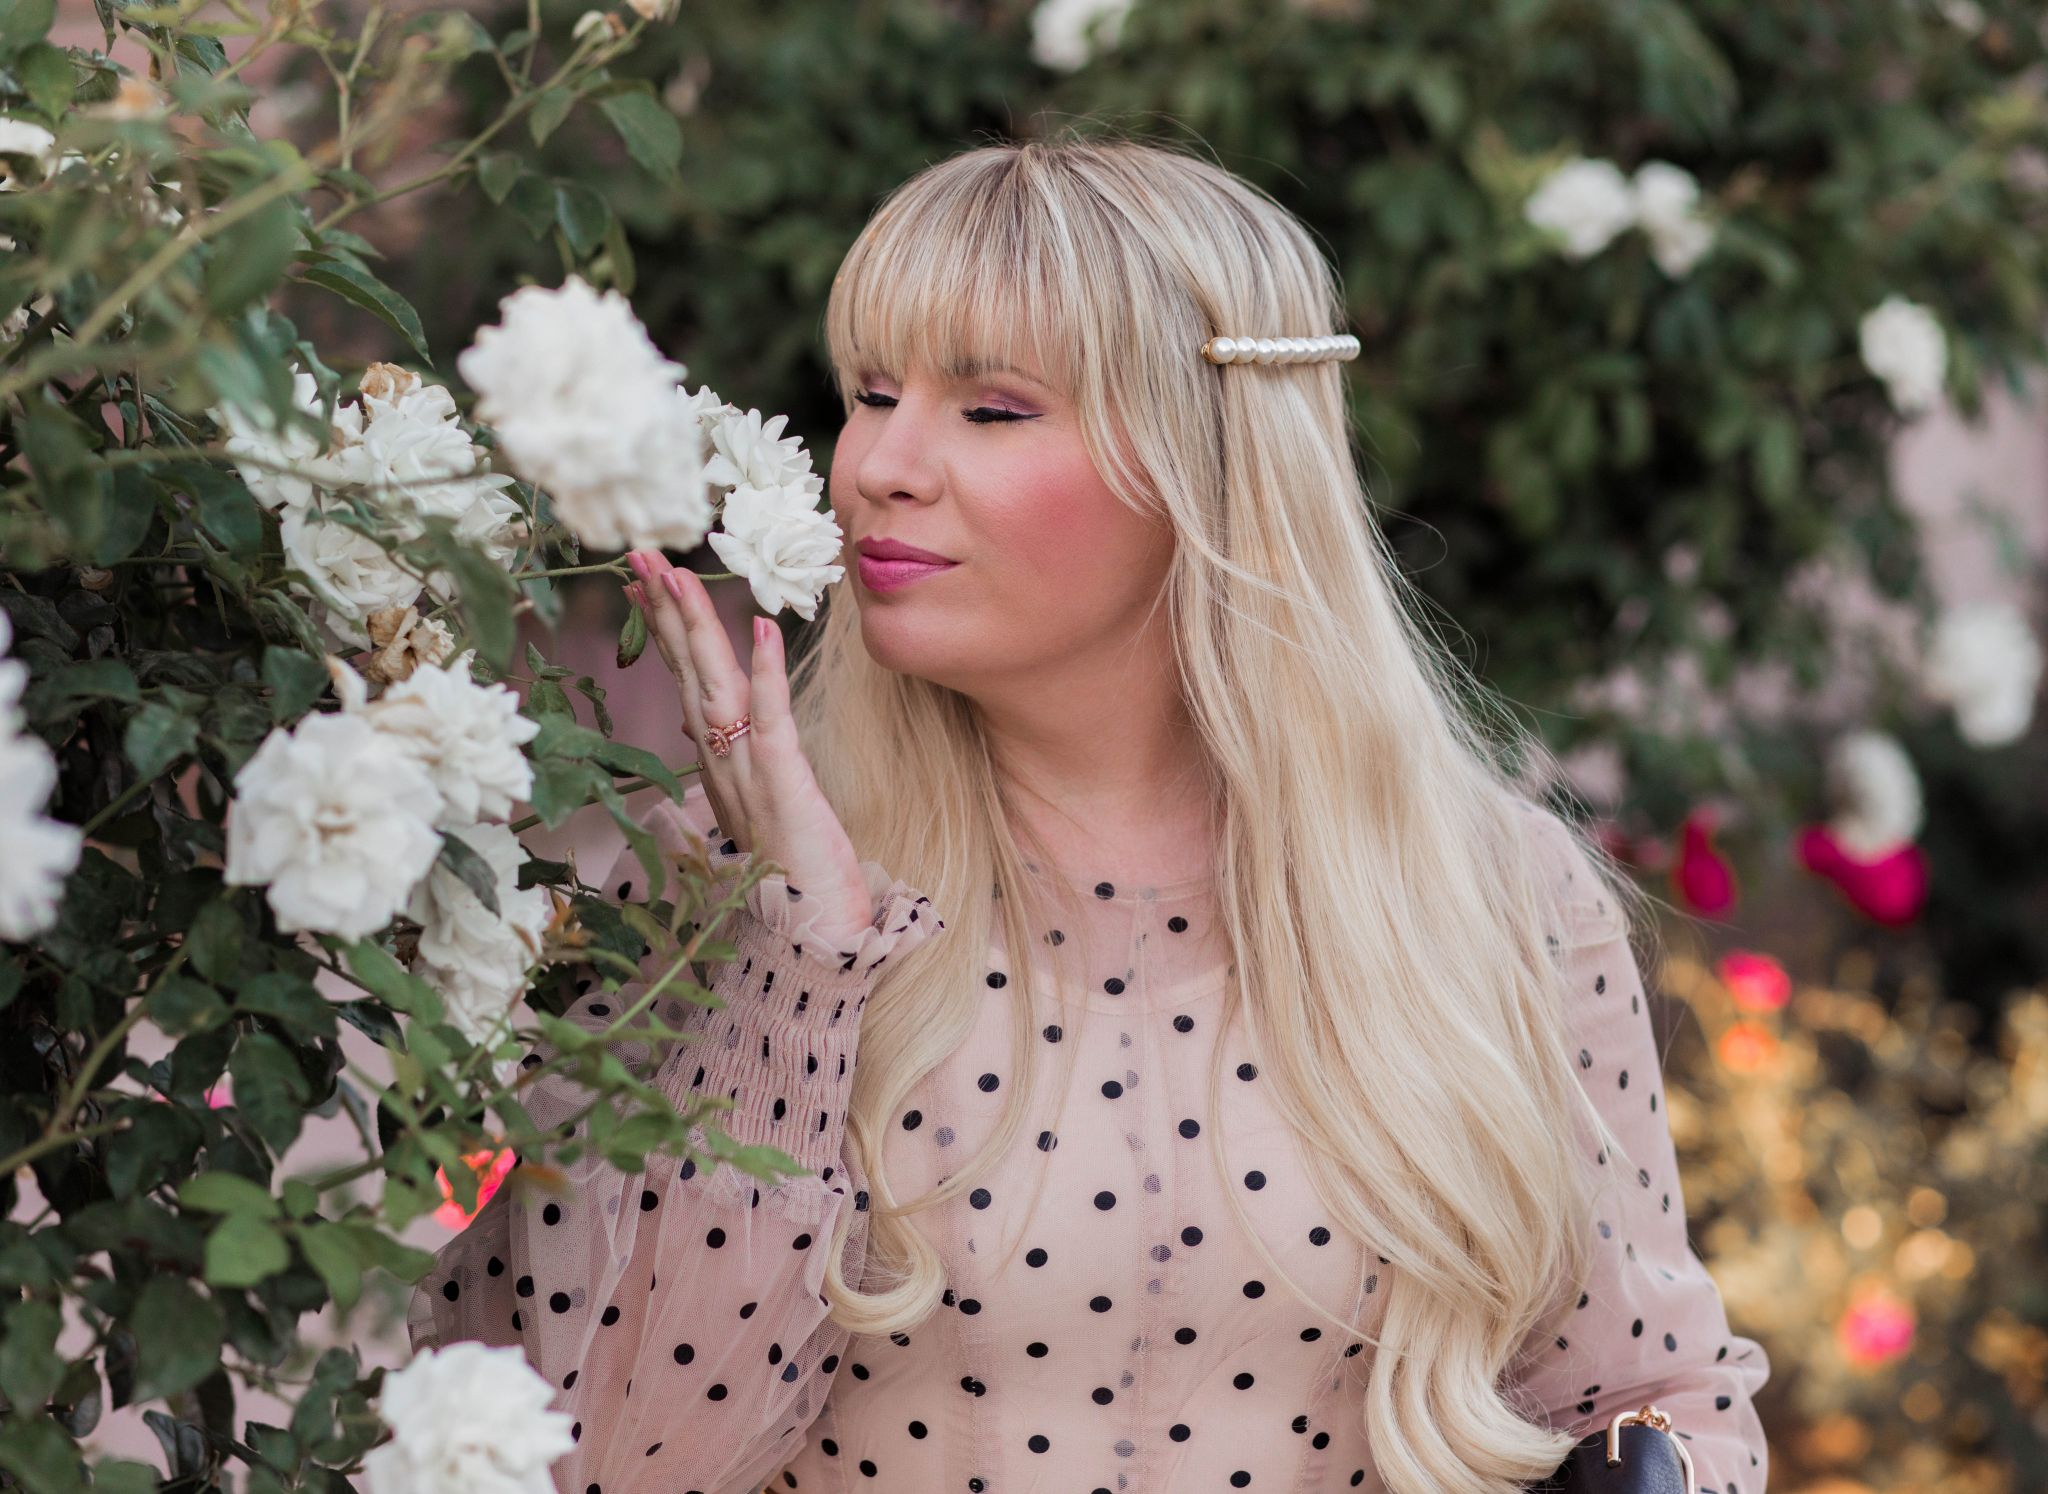 California fashion blogger, Elizabeth Hugen, styles a feminine polka dot tulle dress for summer.